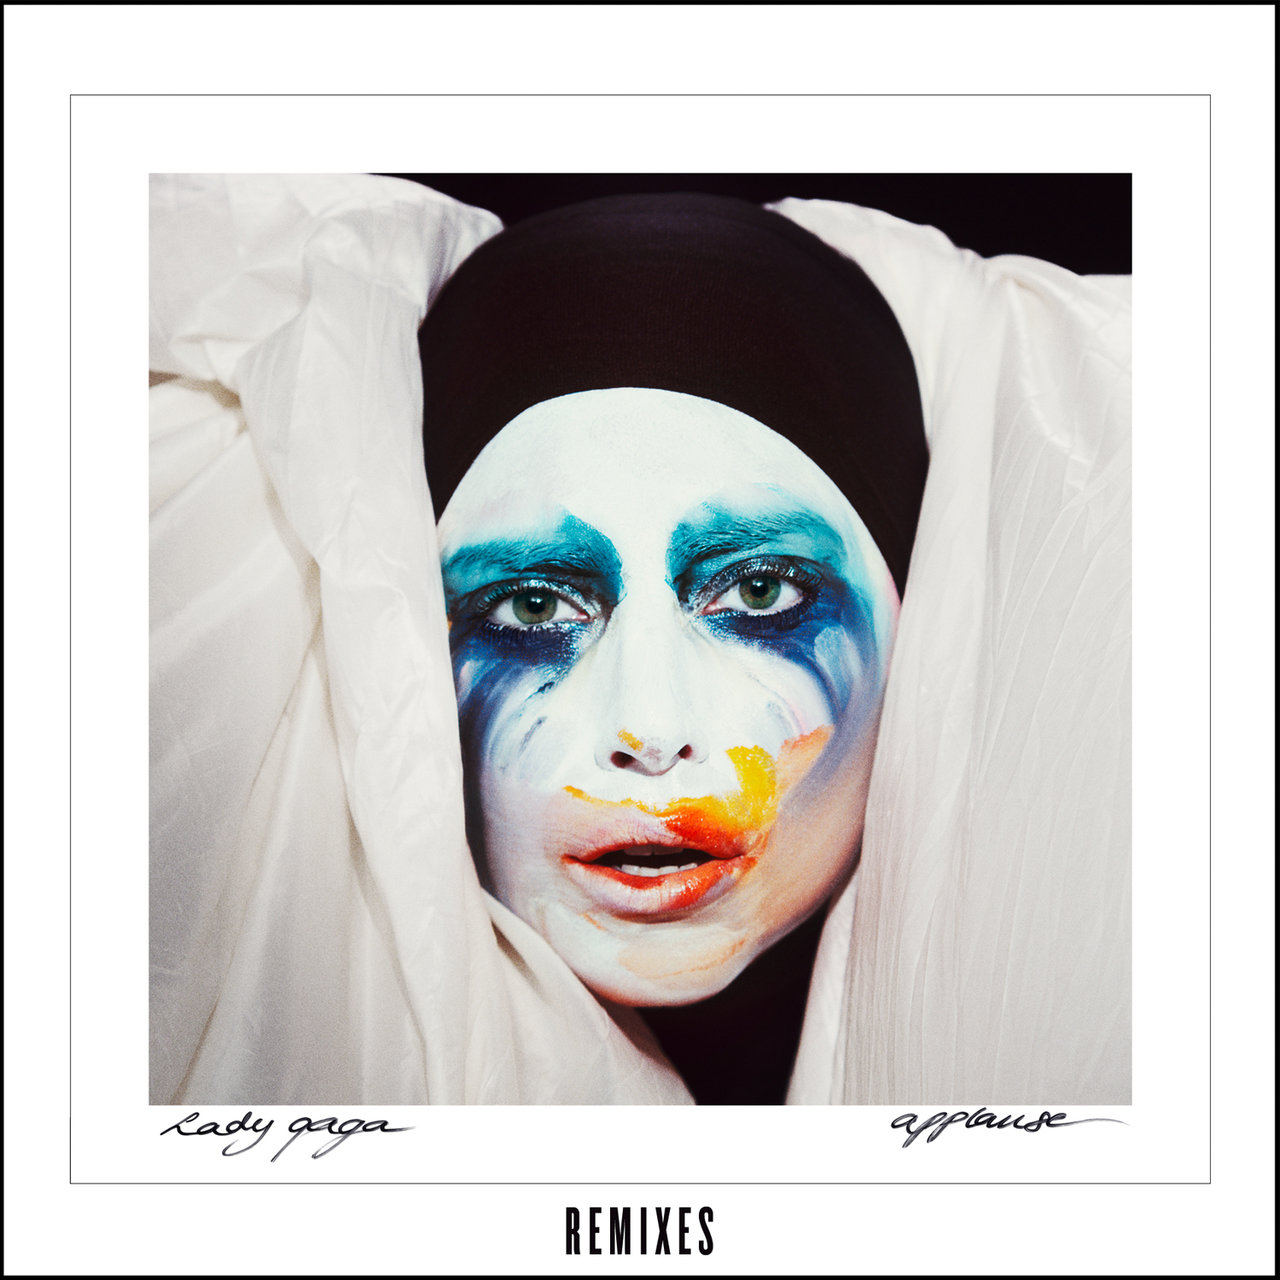 Applause (Remixes)